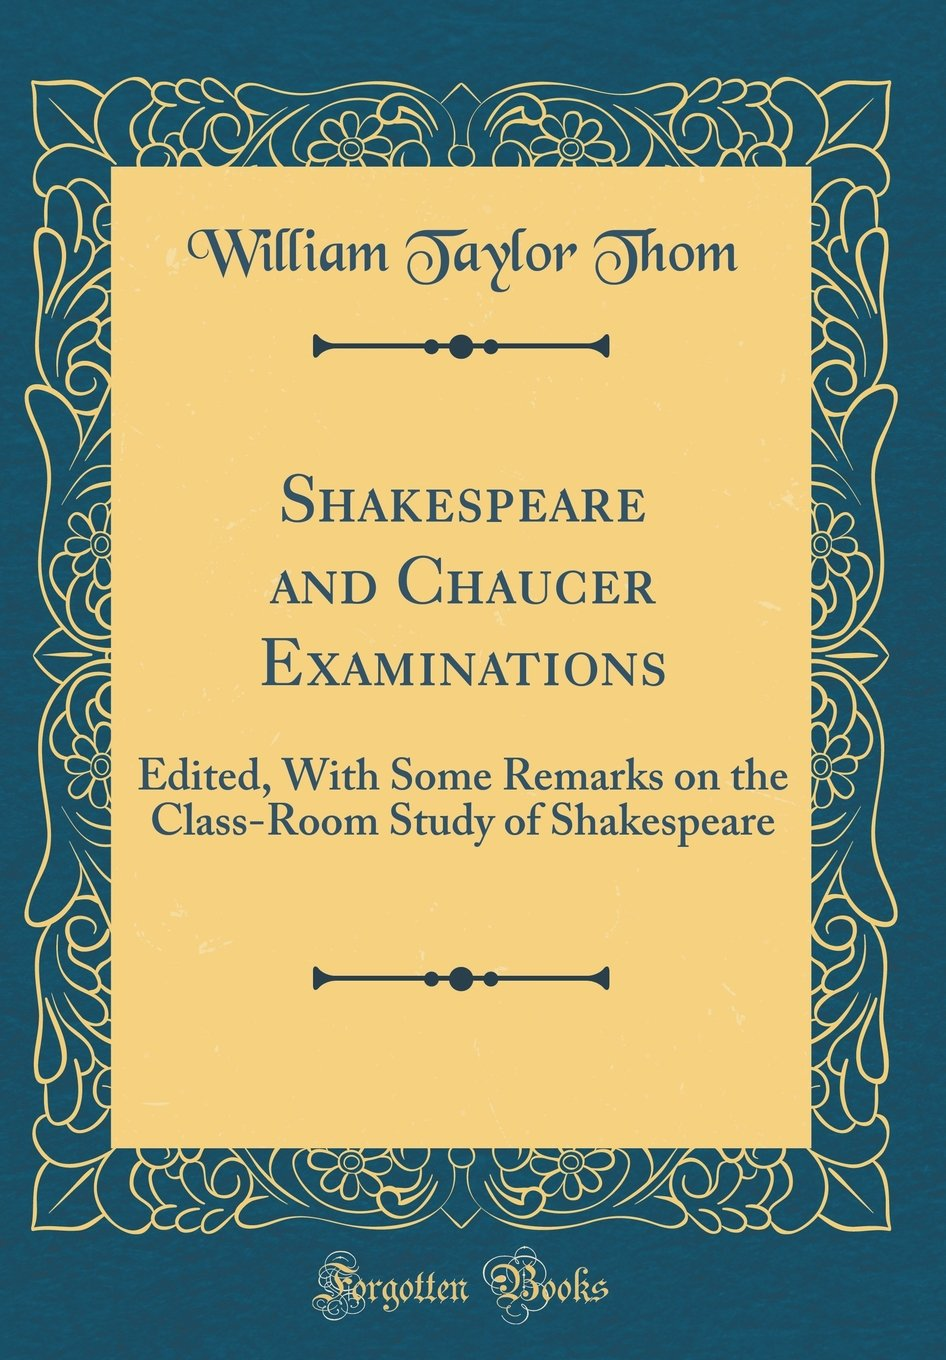 Download Shakespeare and Chaucer Examinations: Edited, With Some Remarks on the Class-Room Study of Shakespeare (Classic Reprint) ebook